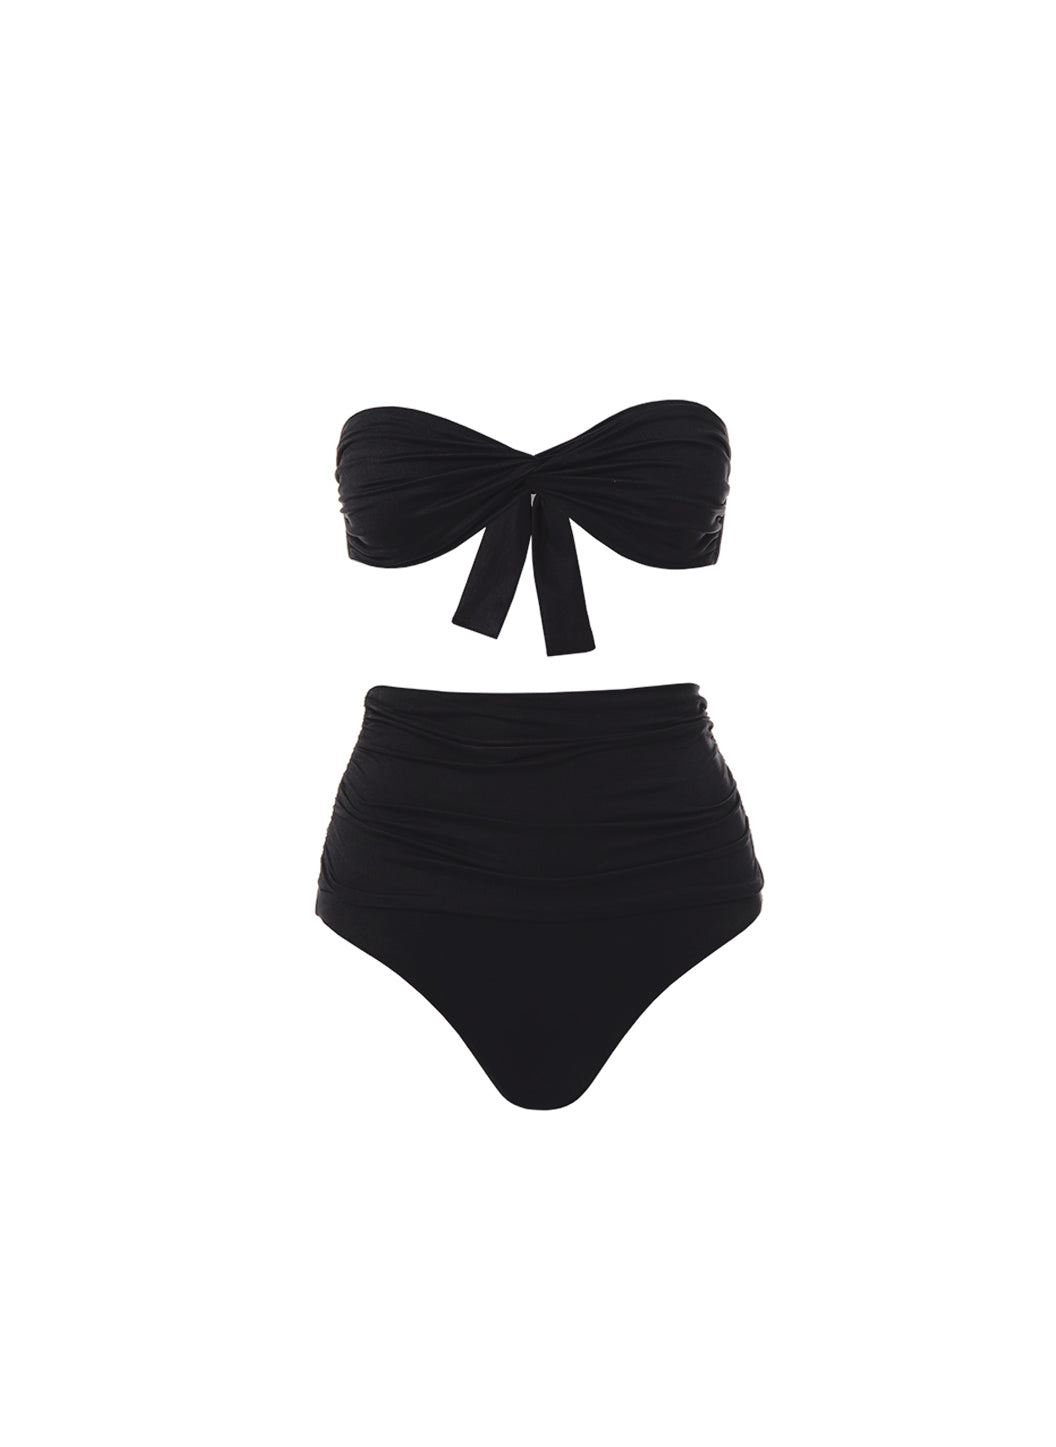 Lyon Black High Waisted Bandeau Bikini